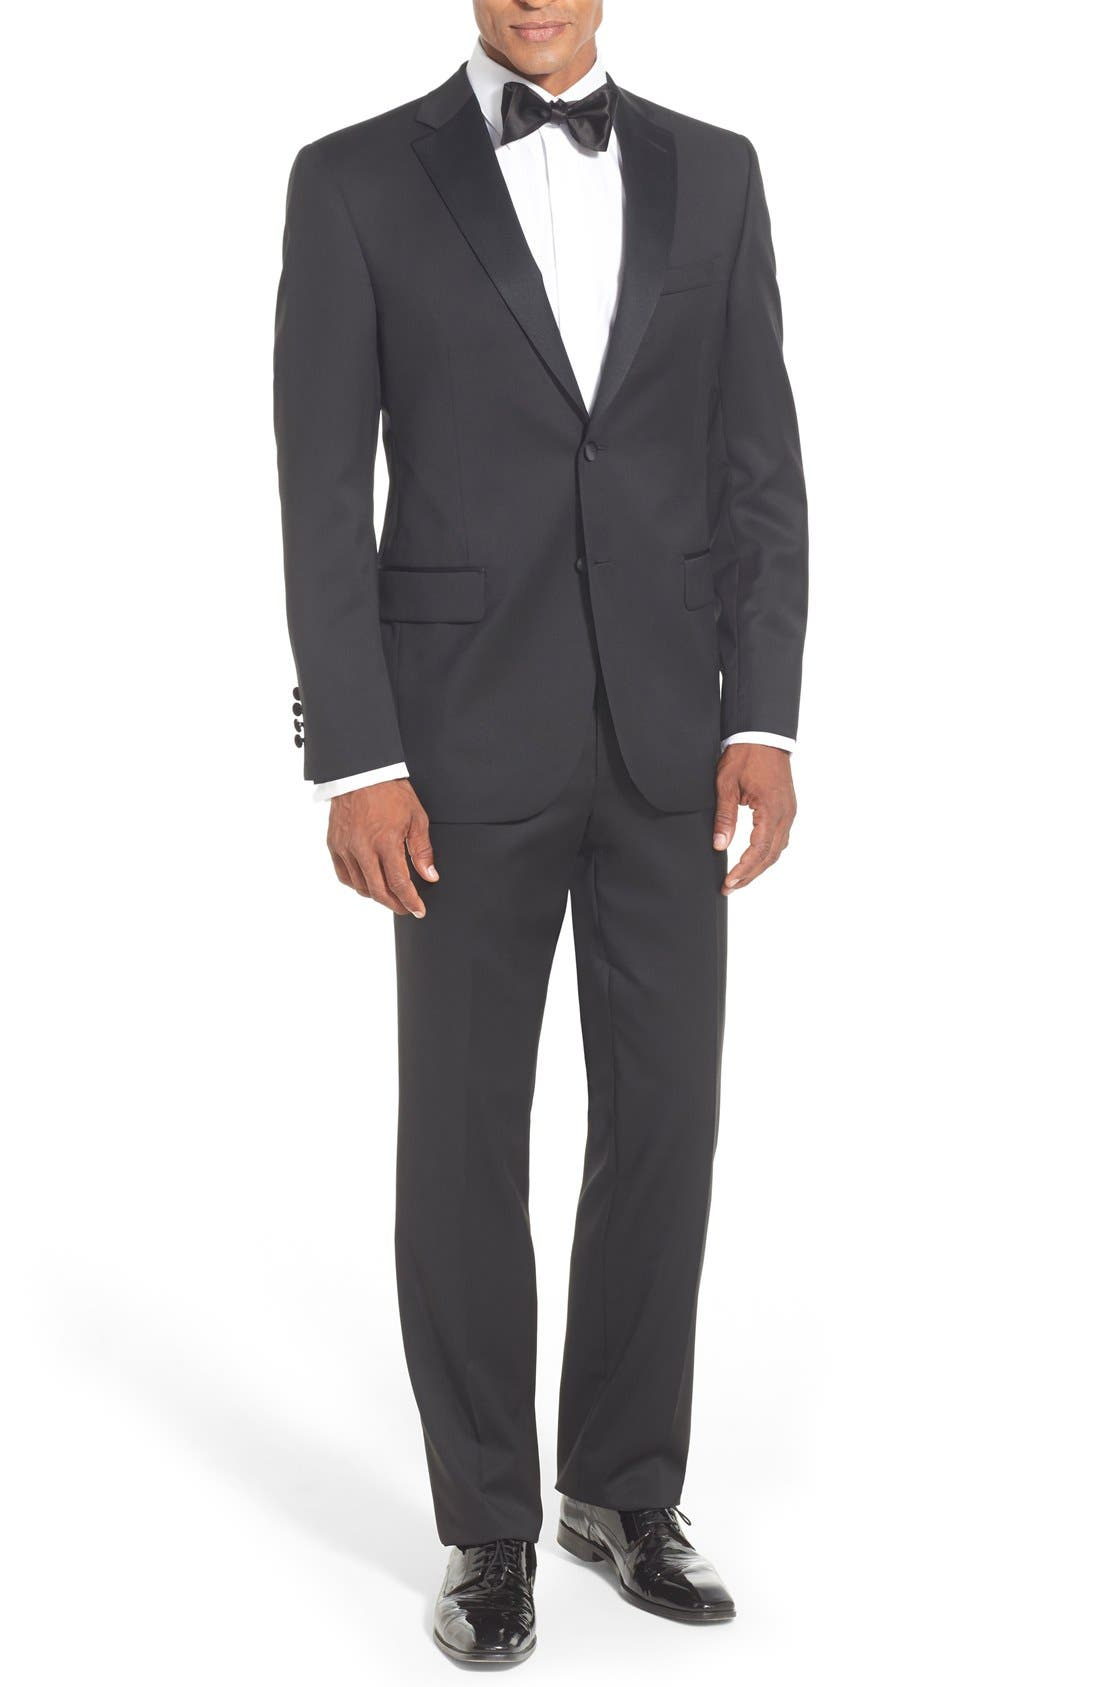 DAVID DONAHUE, Classic Fit Loro Piana Wool Notch Lapel Tuxedo, Main thumbnail 1, color, BLACK